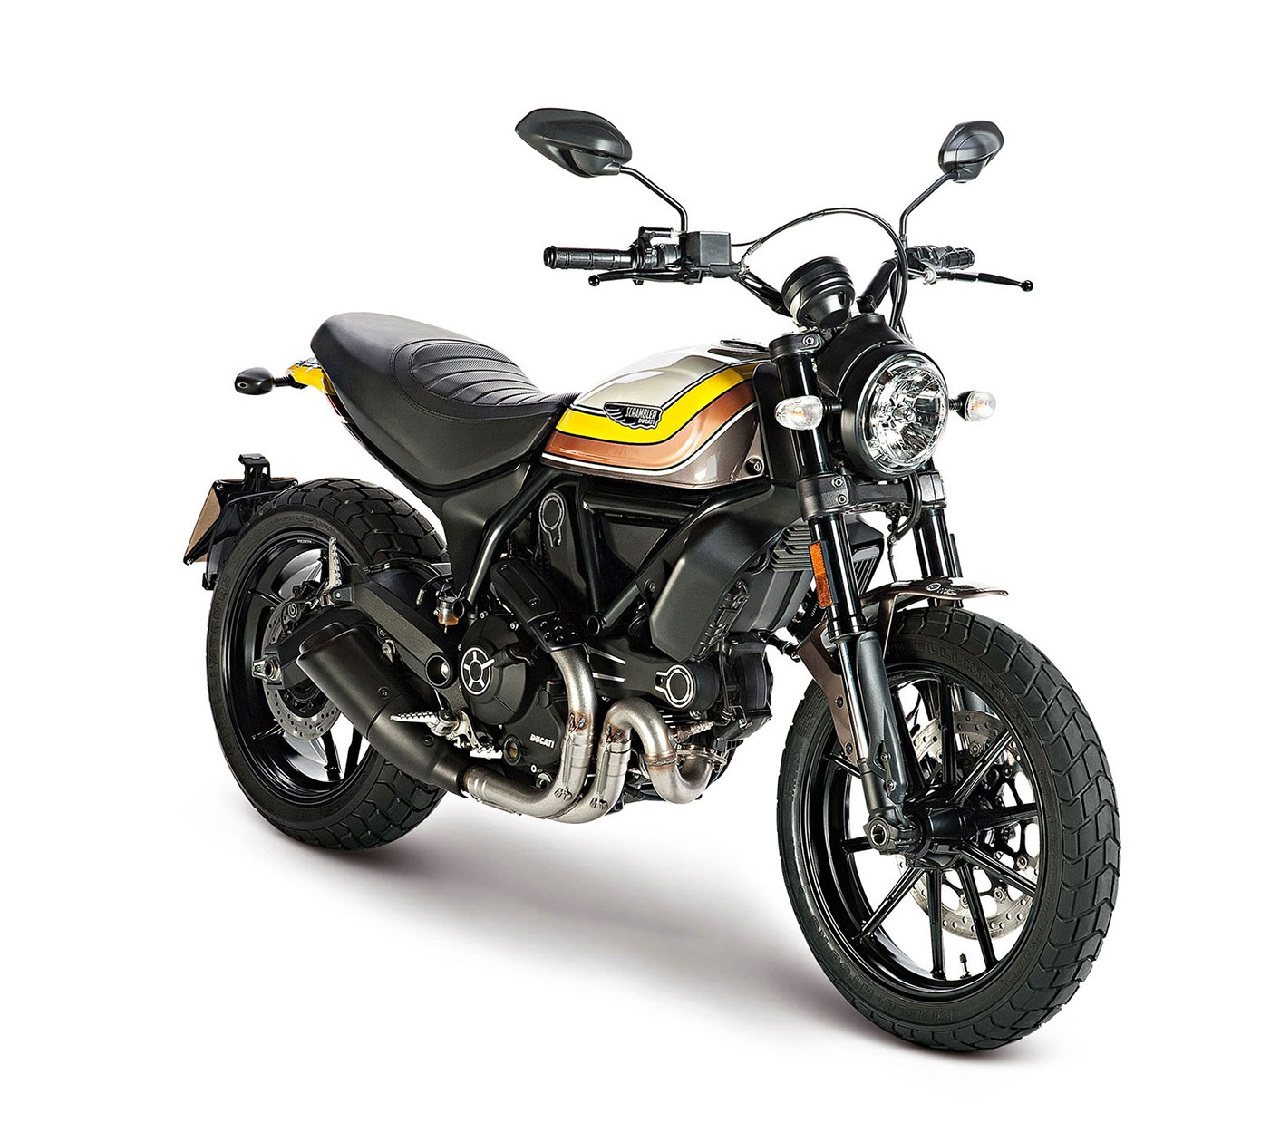 Ducati Launches Scrambler Mach 2.0, Available In Select